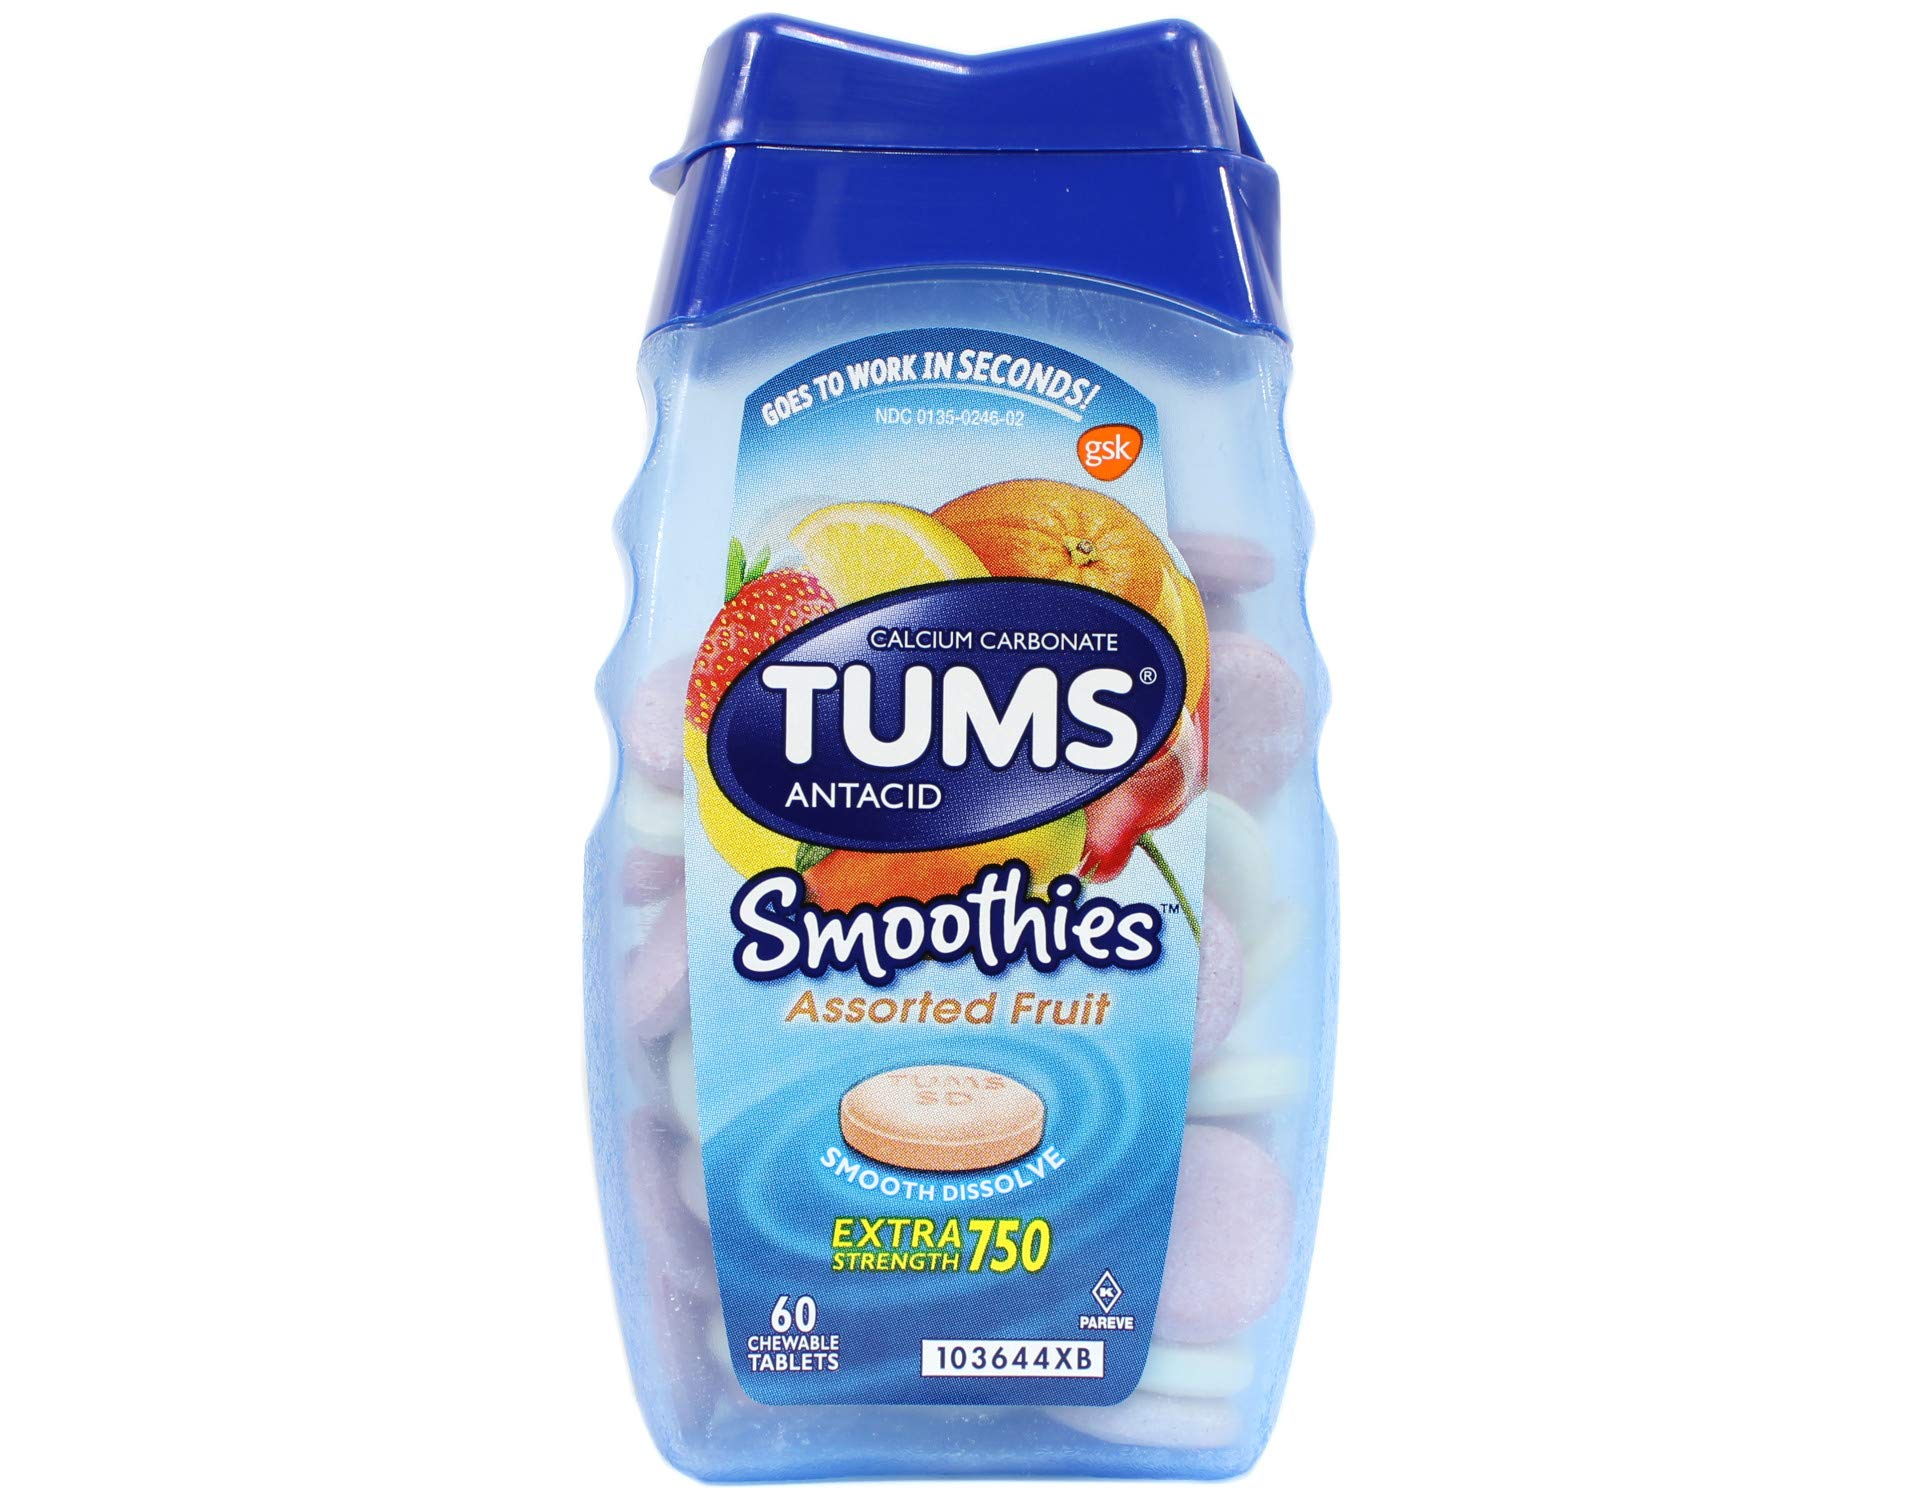 Tums Smoothies Assorted Tropical Fruit - 60 Chewable Tablets